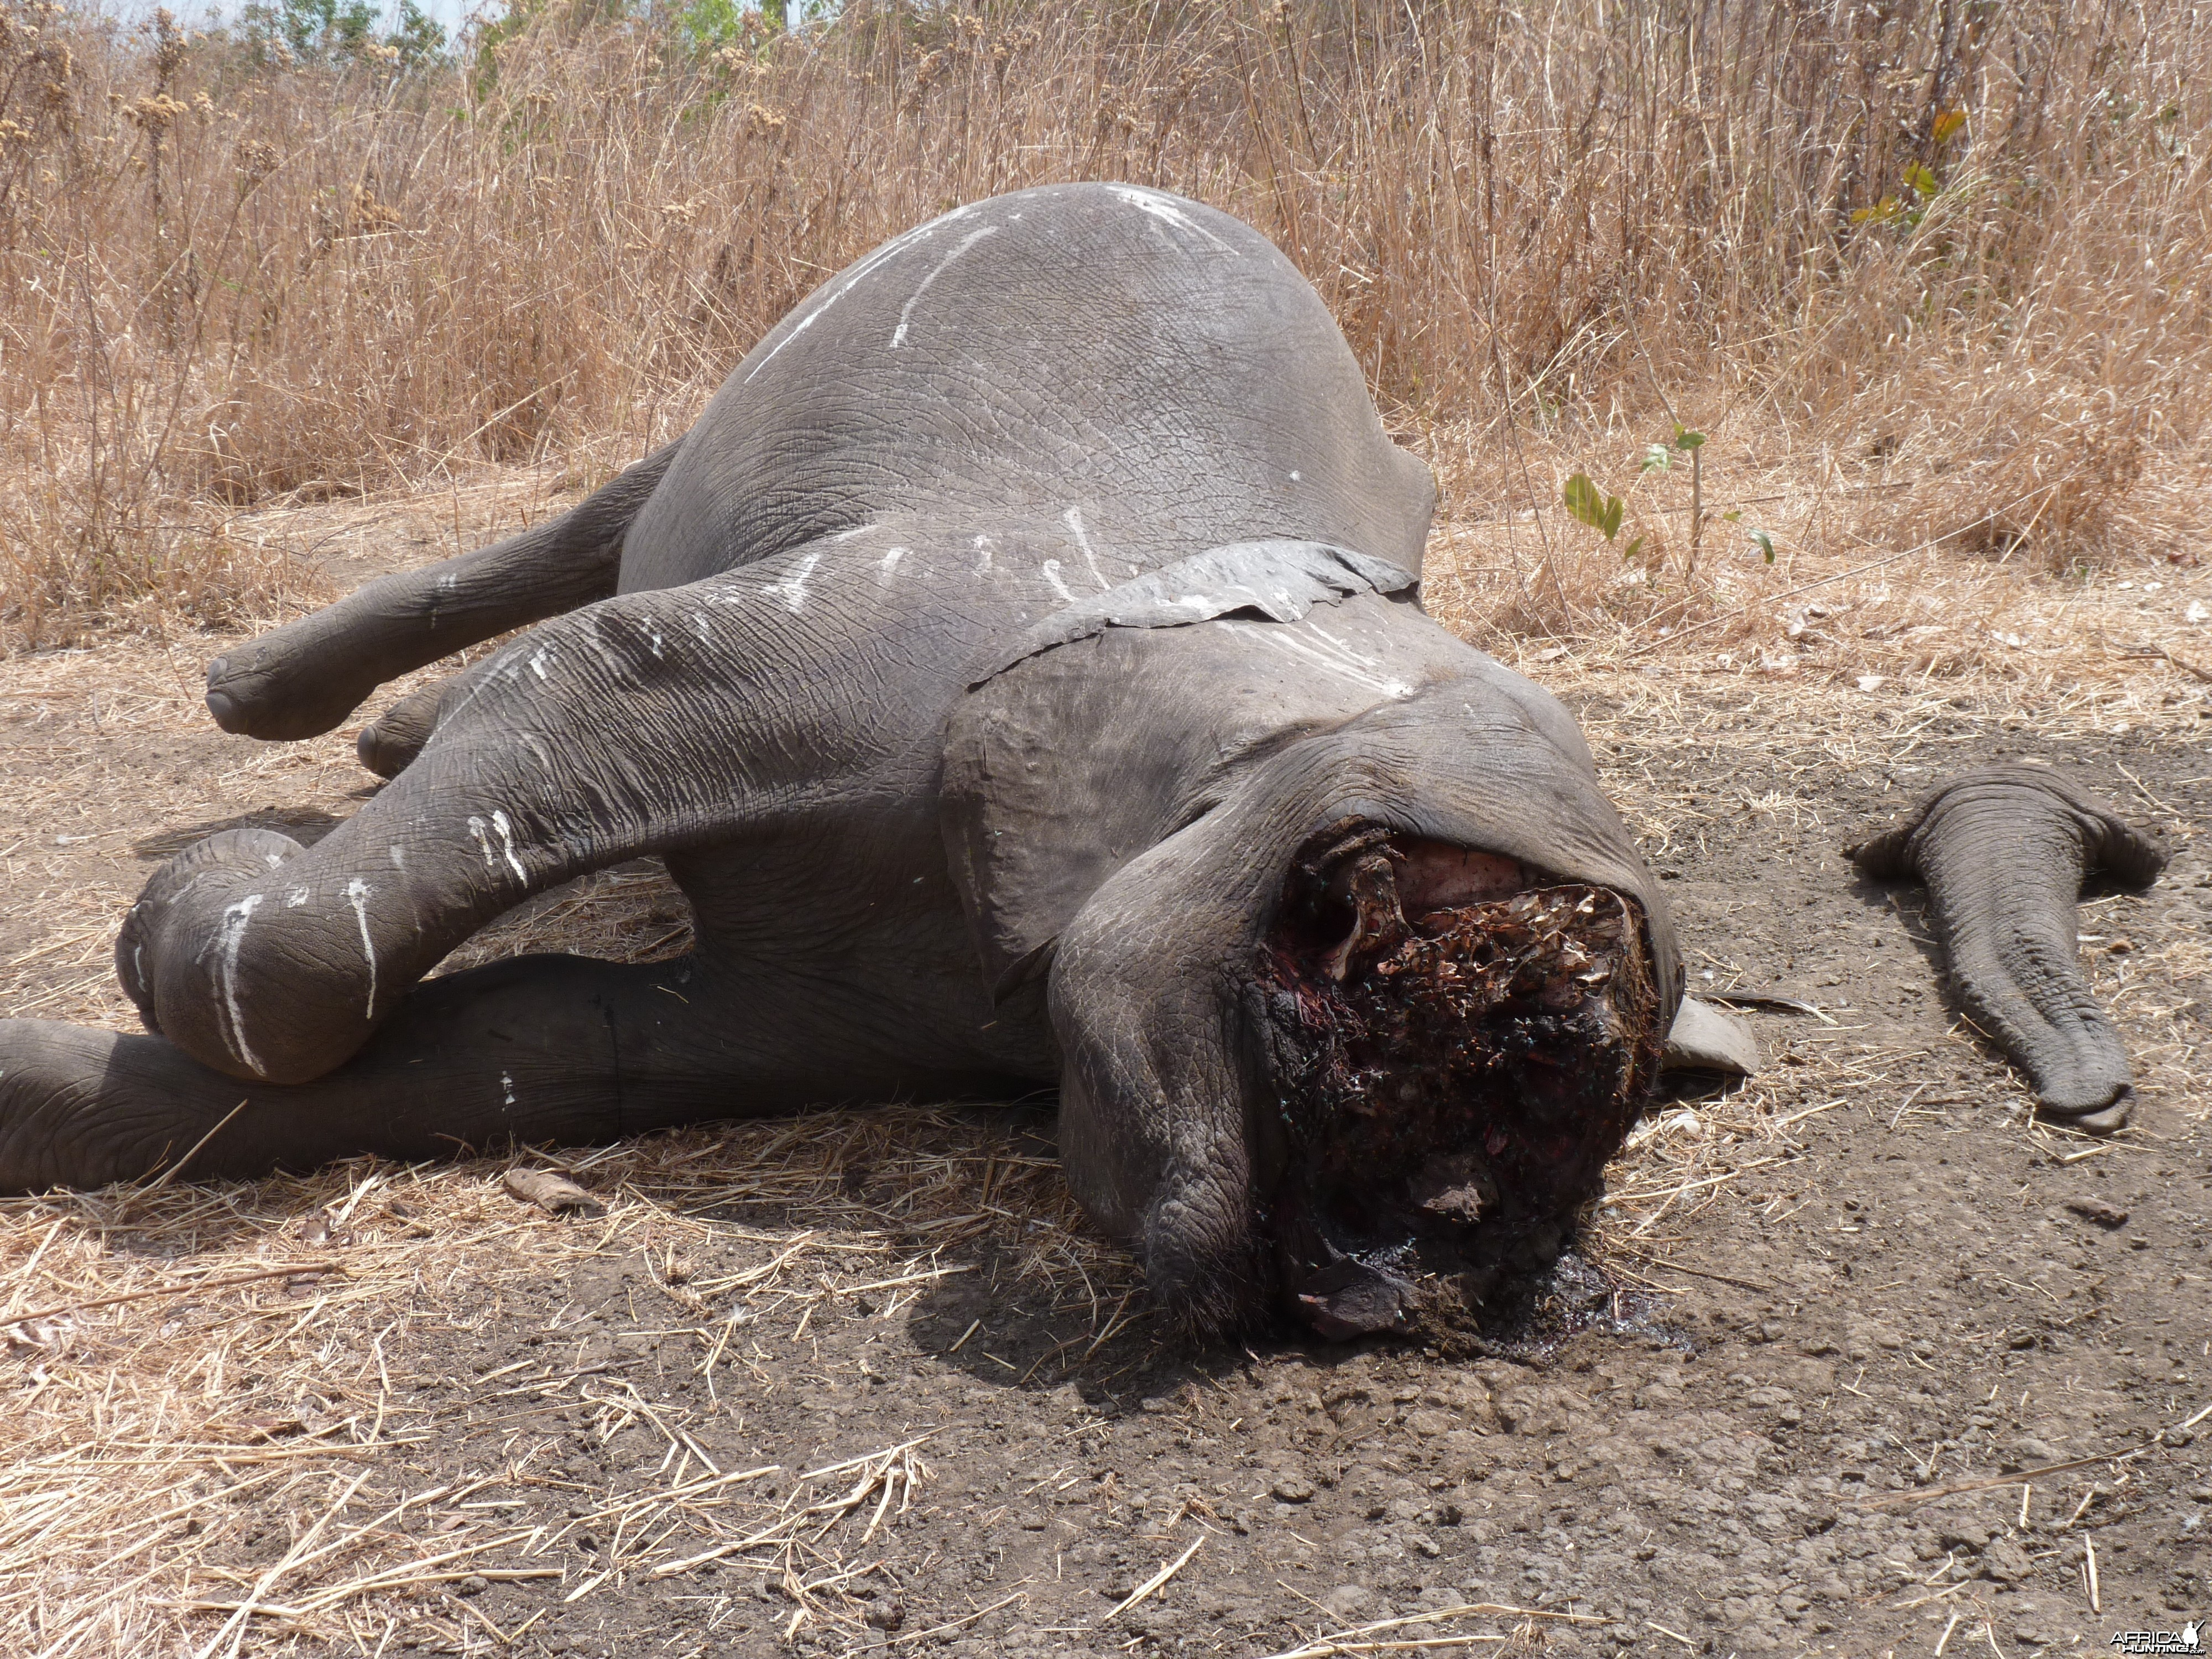 Elephant poaching in Tanzania